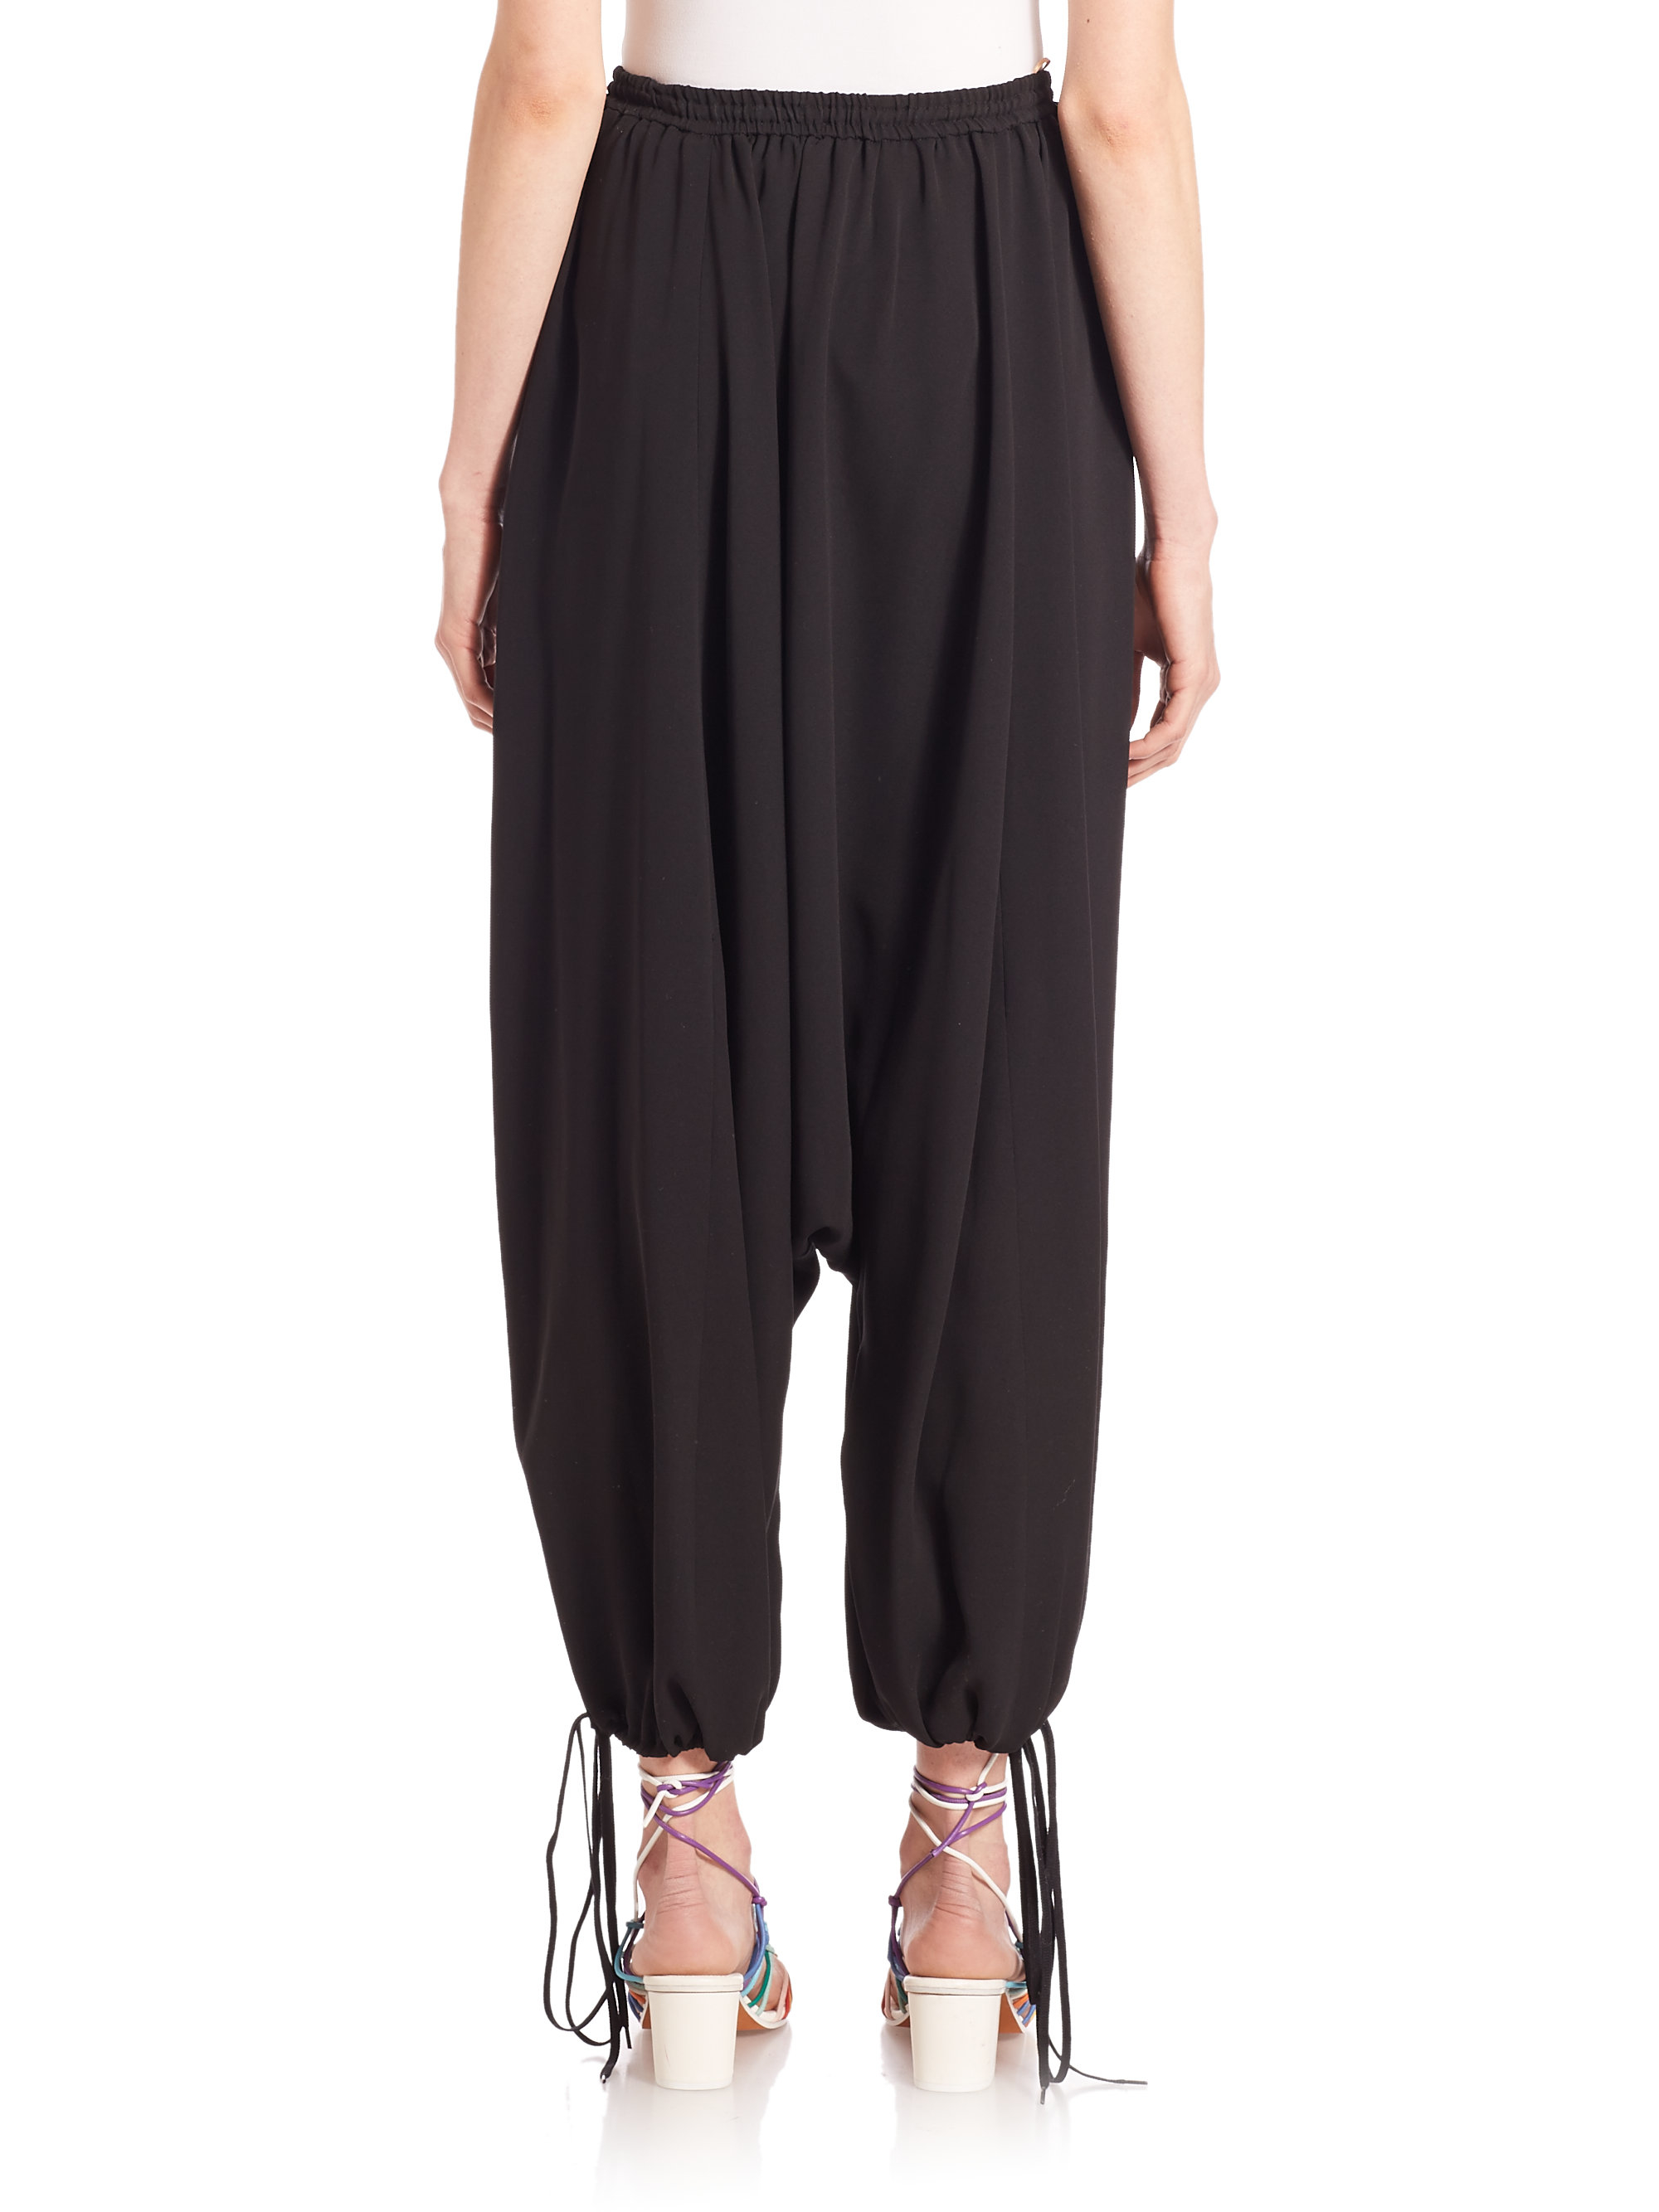 Chloé Silk Harem Pants in Black | Lyst